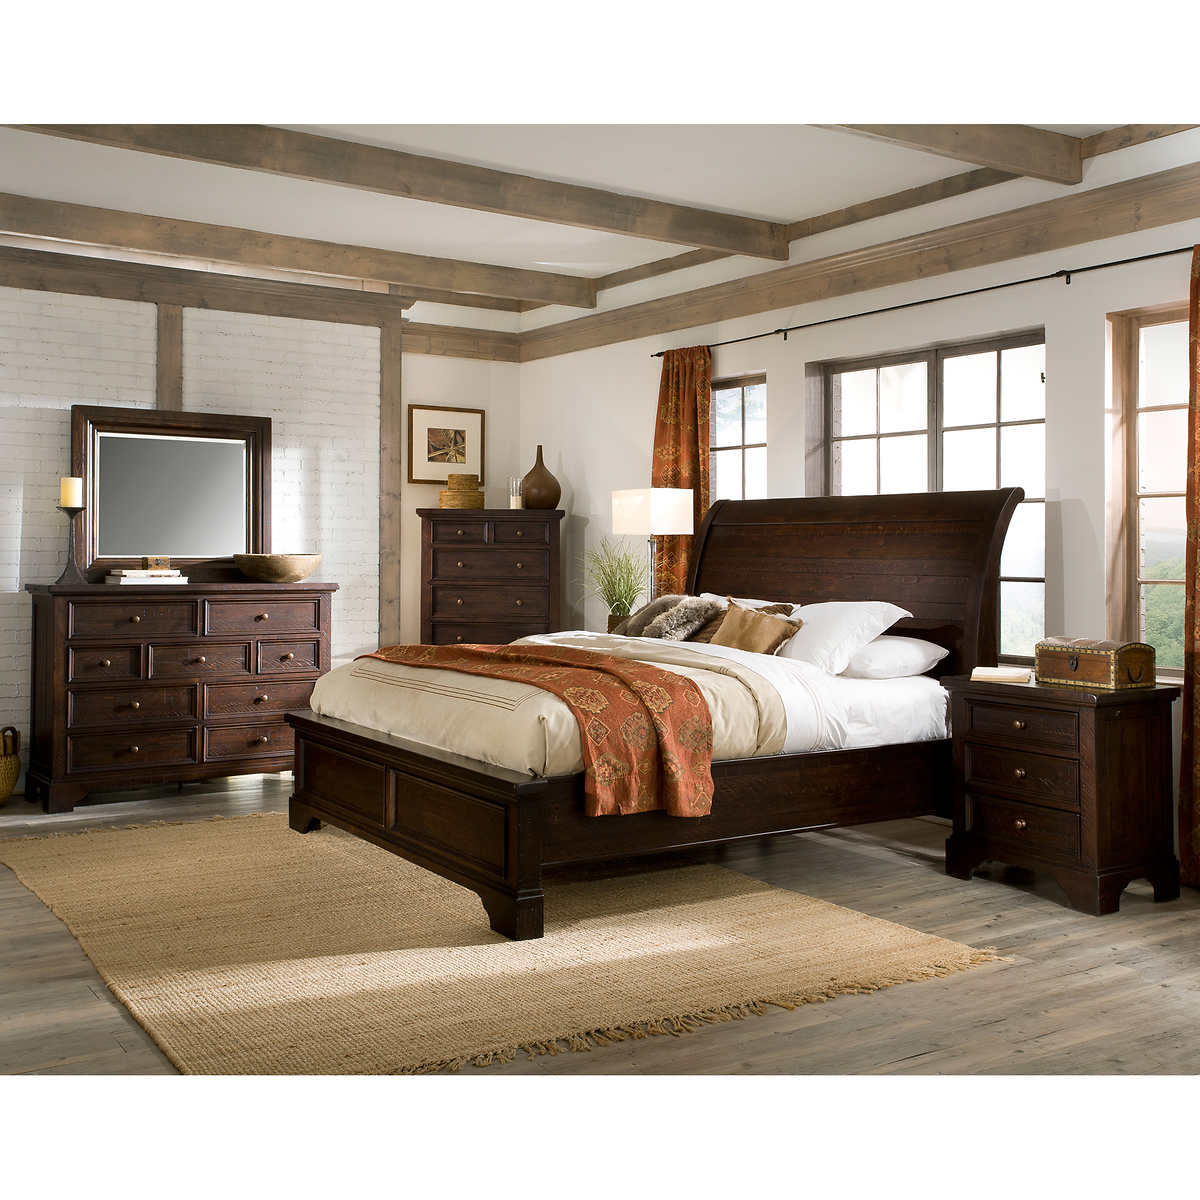 king bedroom furniture set.  Telluride 6 piece King Bedroom Set